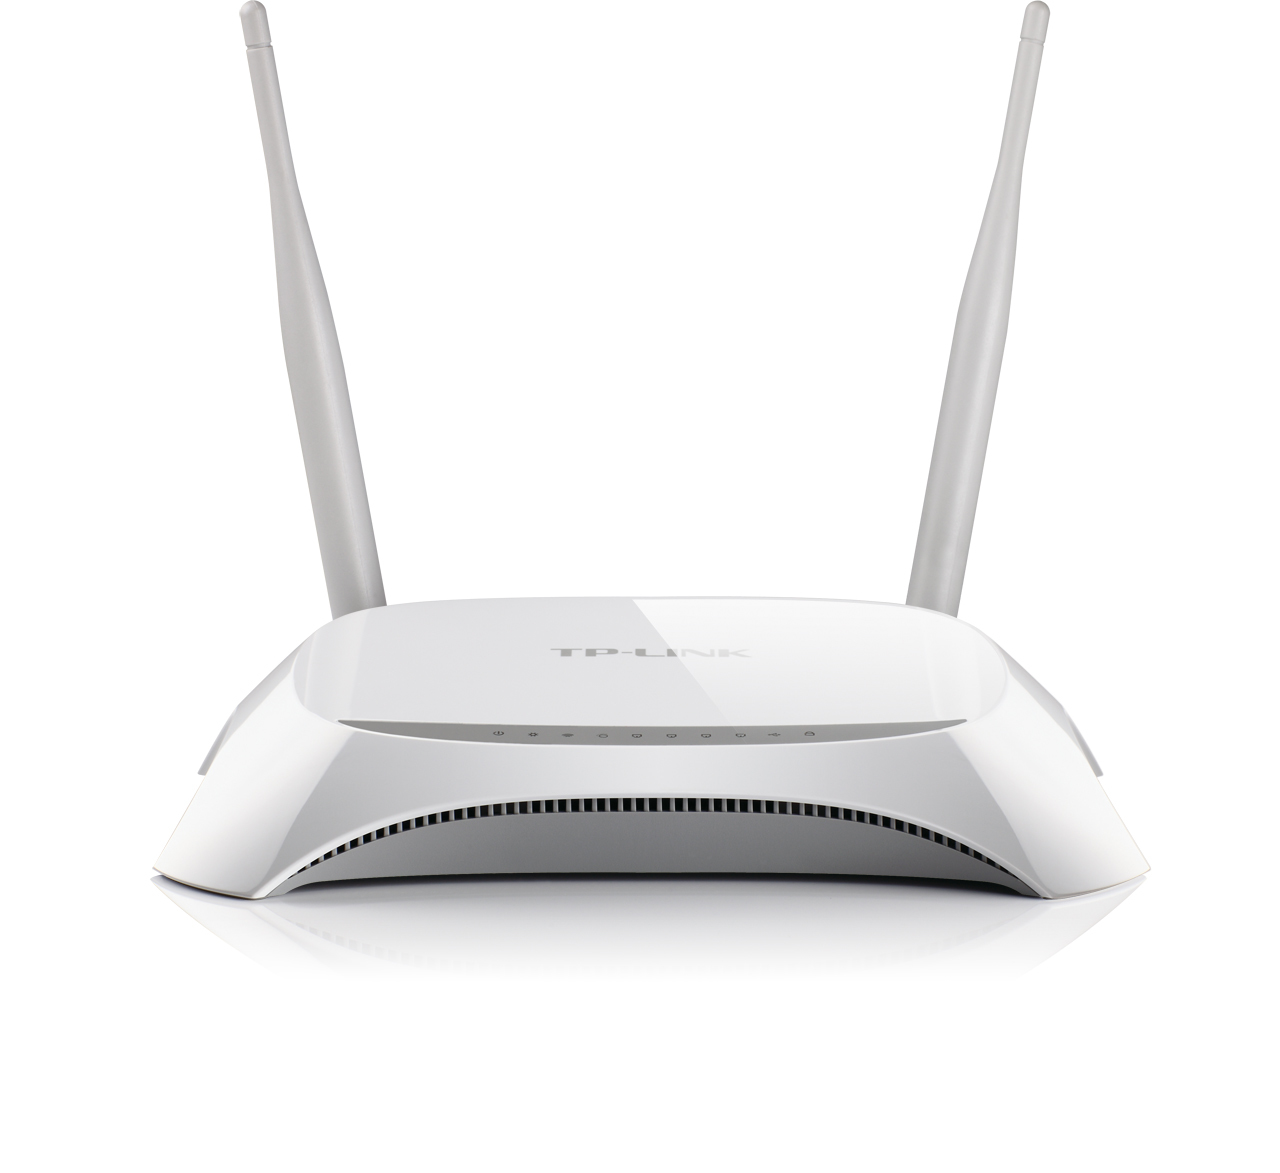 TP-LINK TL-MR3420 3G/4G 300Mbps Wireless N Router - Wireless Router - 4-Port-Switch